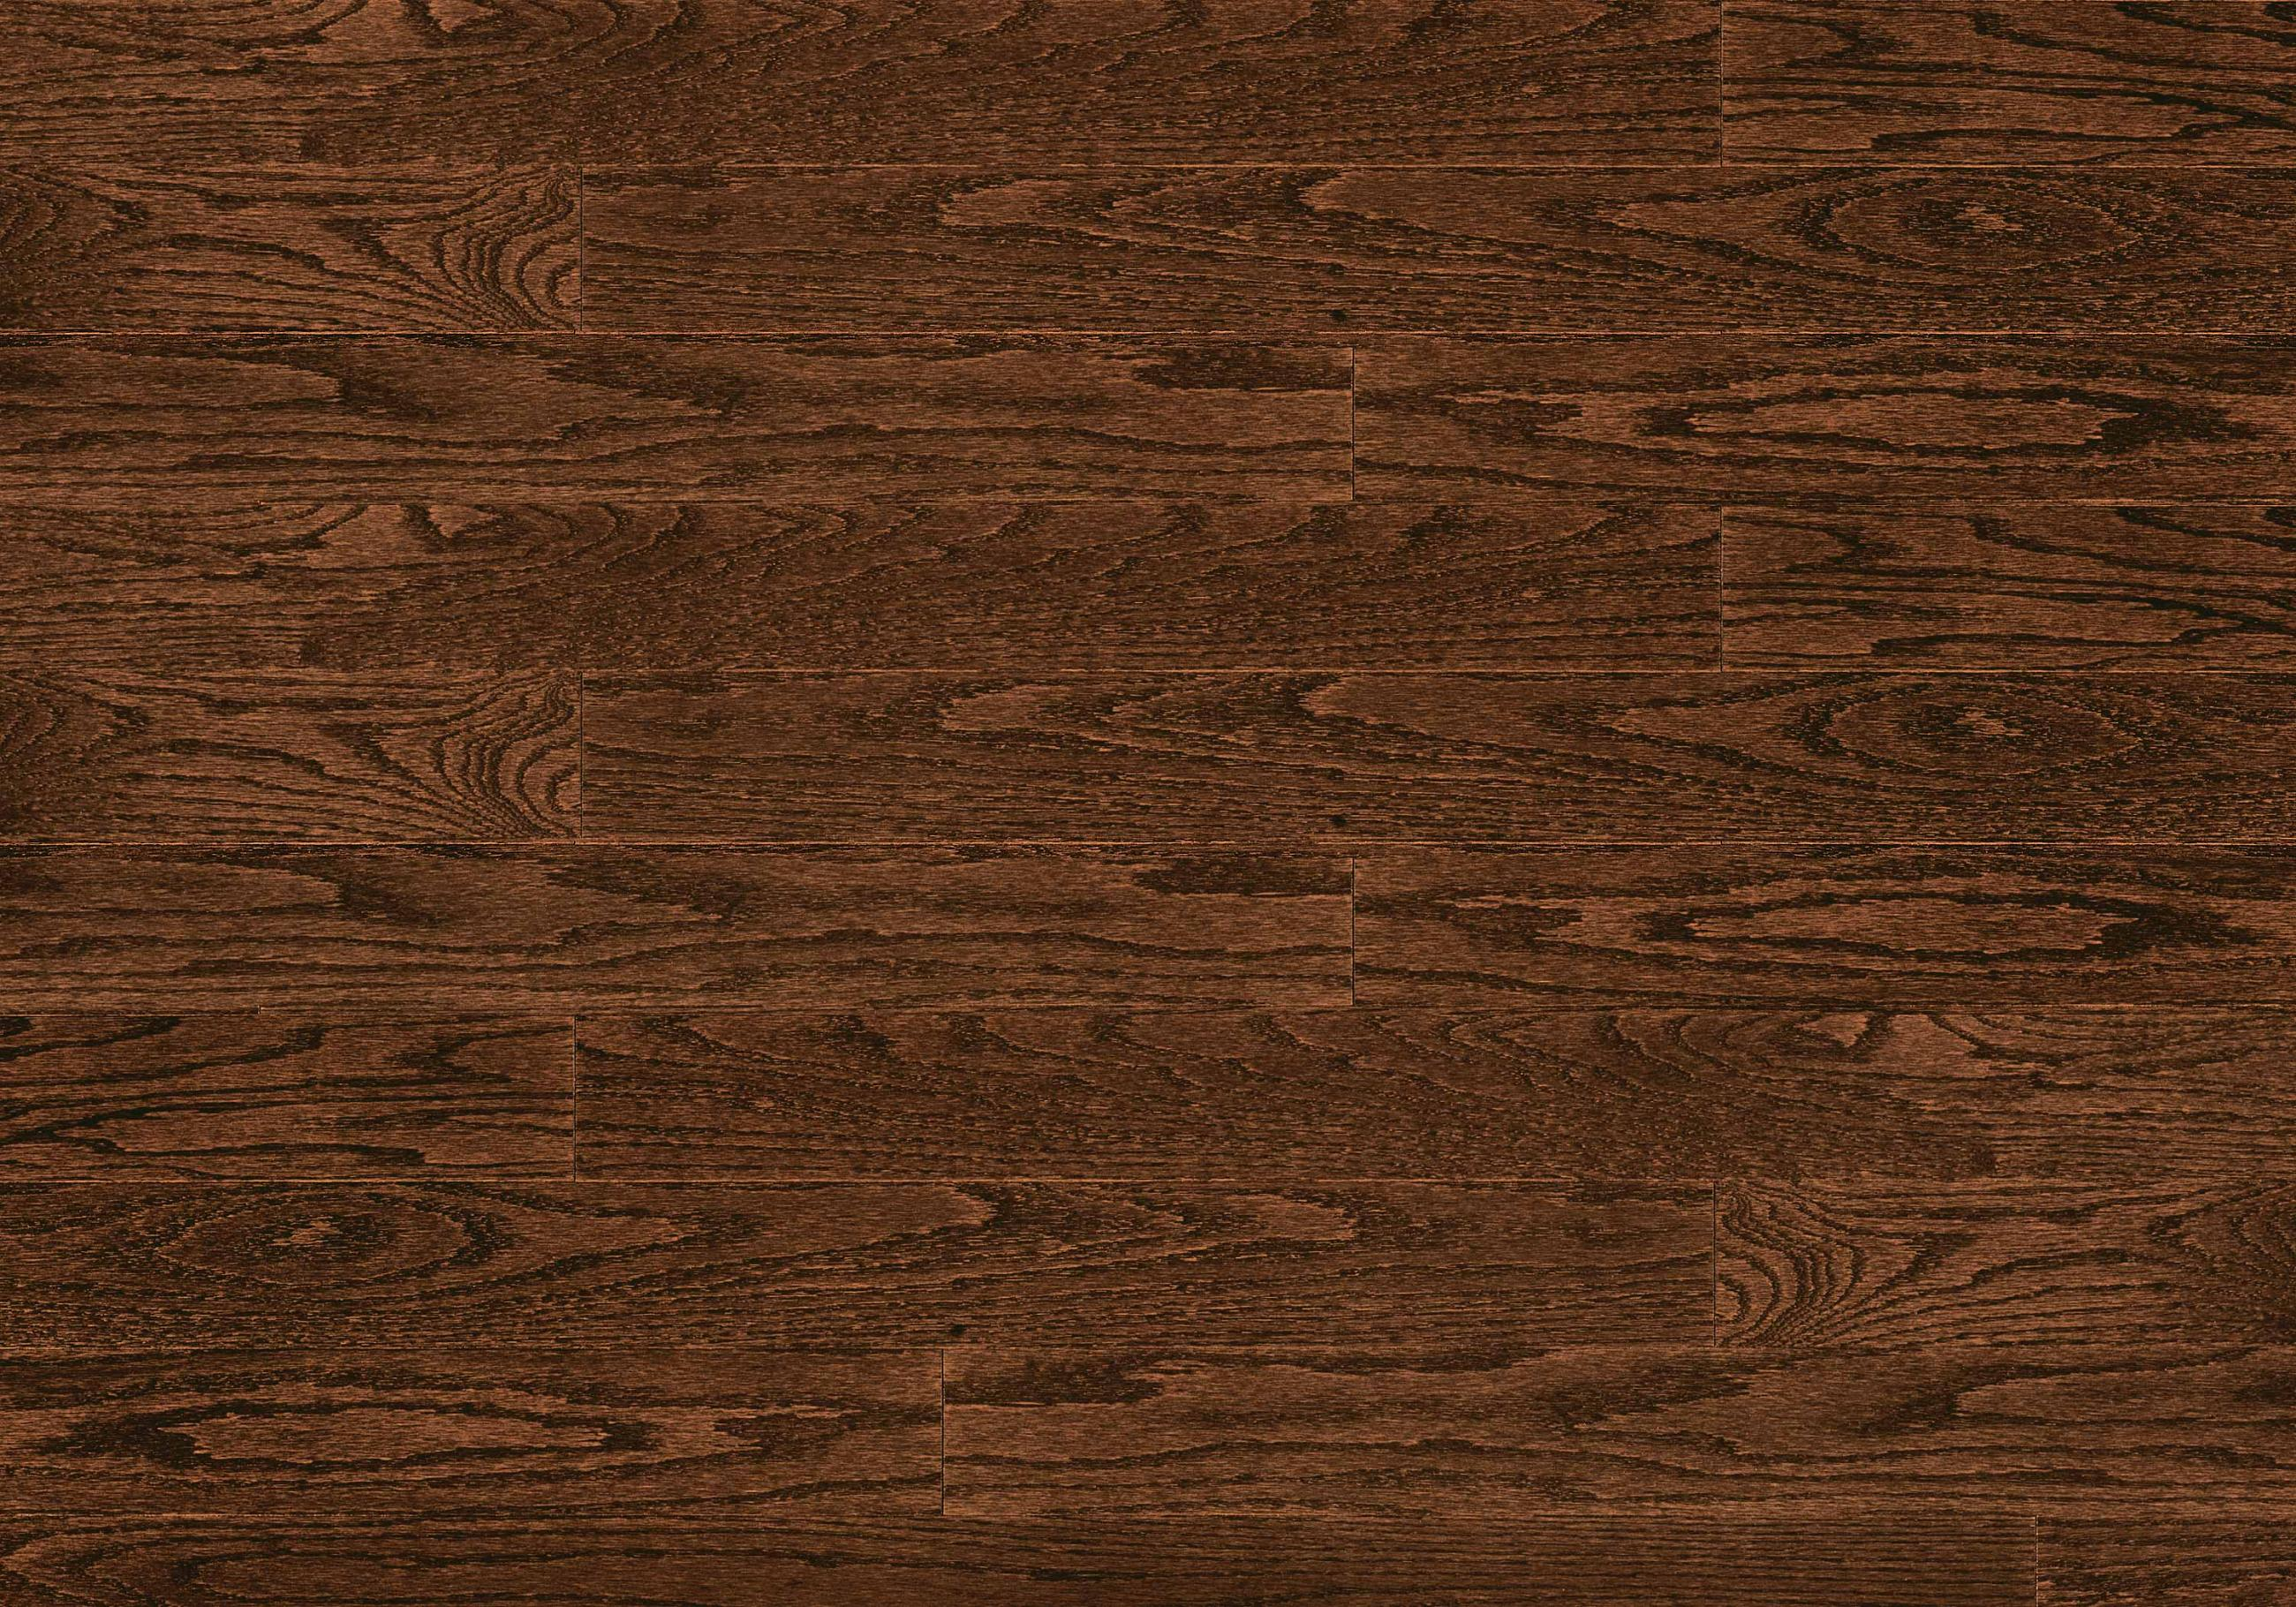 lauzon ambiance collection red oak carob aa floors toronto. Black Bedroom Furniture Sets. Home Design Ideas